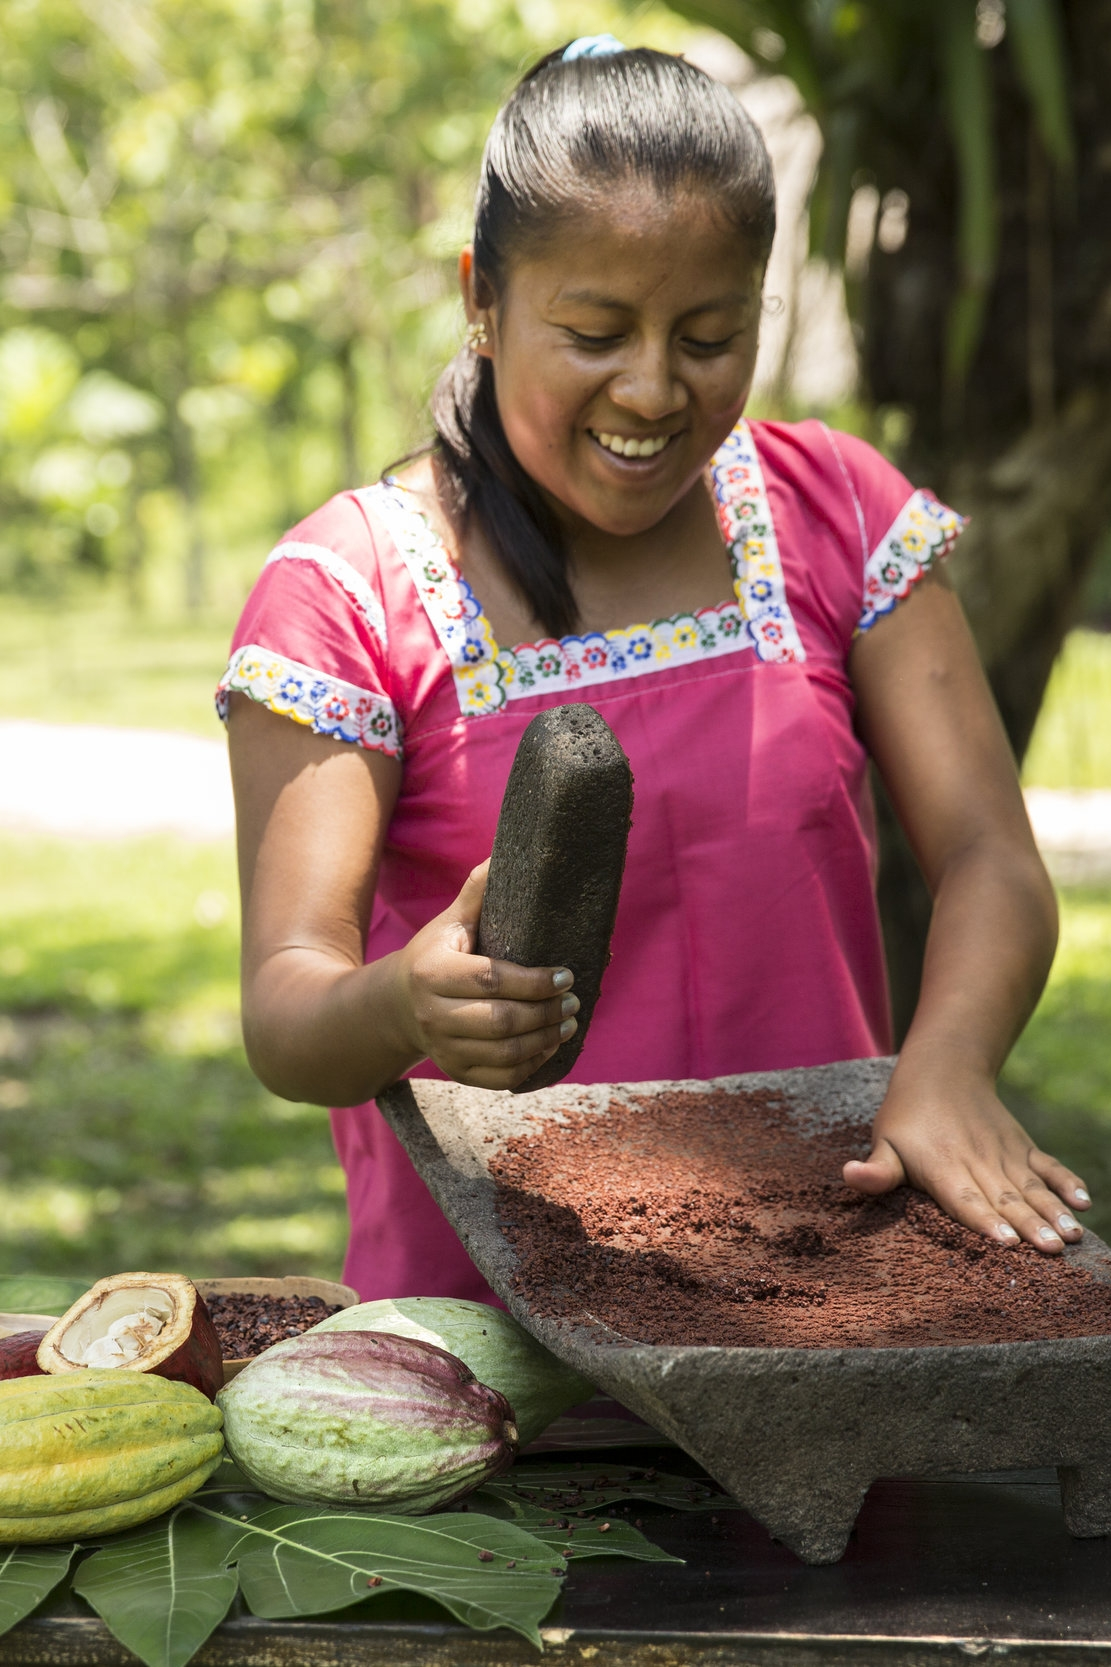 Chocolate Making - Visit a traditional Mayan family operation led by Julio Sacqui, a master chocolate maker who offers two-hour farm-to-factory tours including a trip to the cacao plantation. The full process is explained right through to the finished bar of dark chocolate.